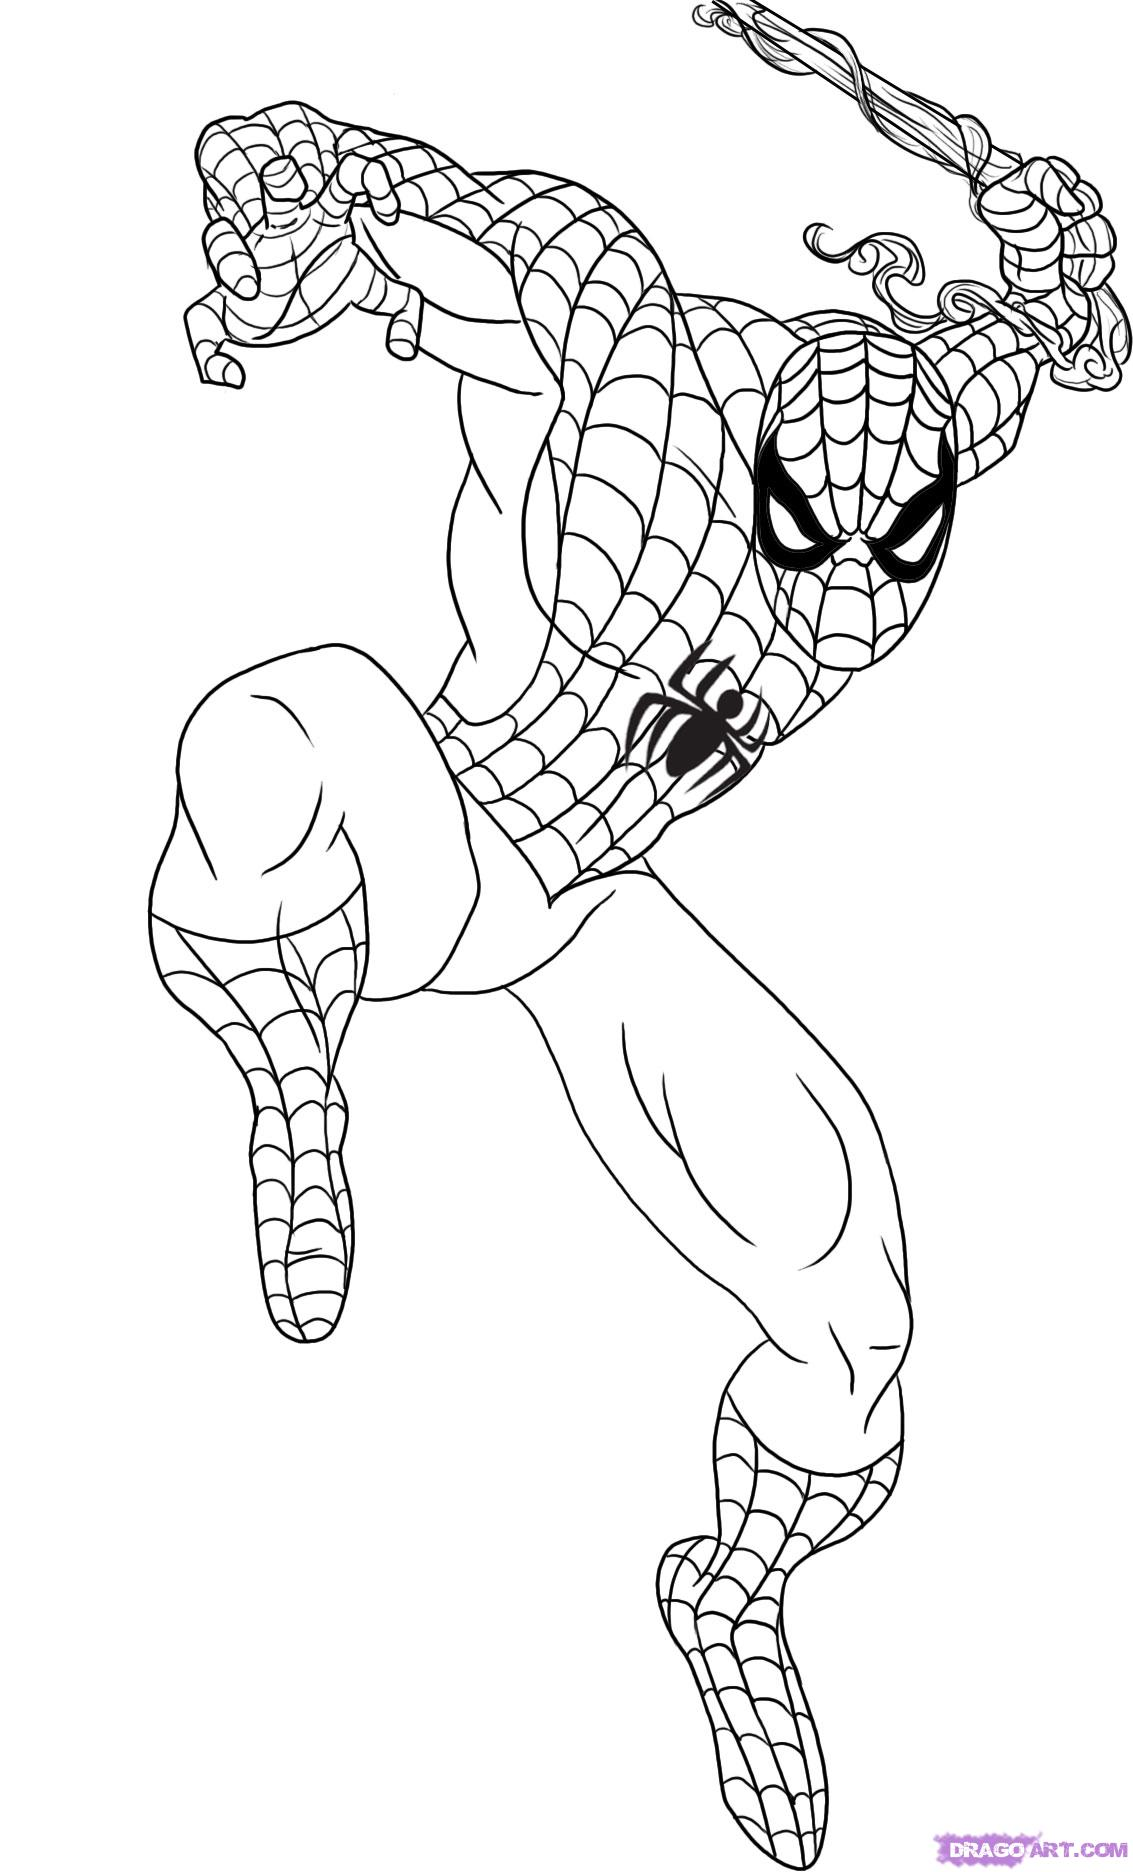 coloring spiderman drawing easy baby spiderman drawing free download on clipartmag spiderman drawing coloring easy